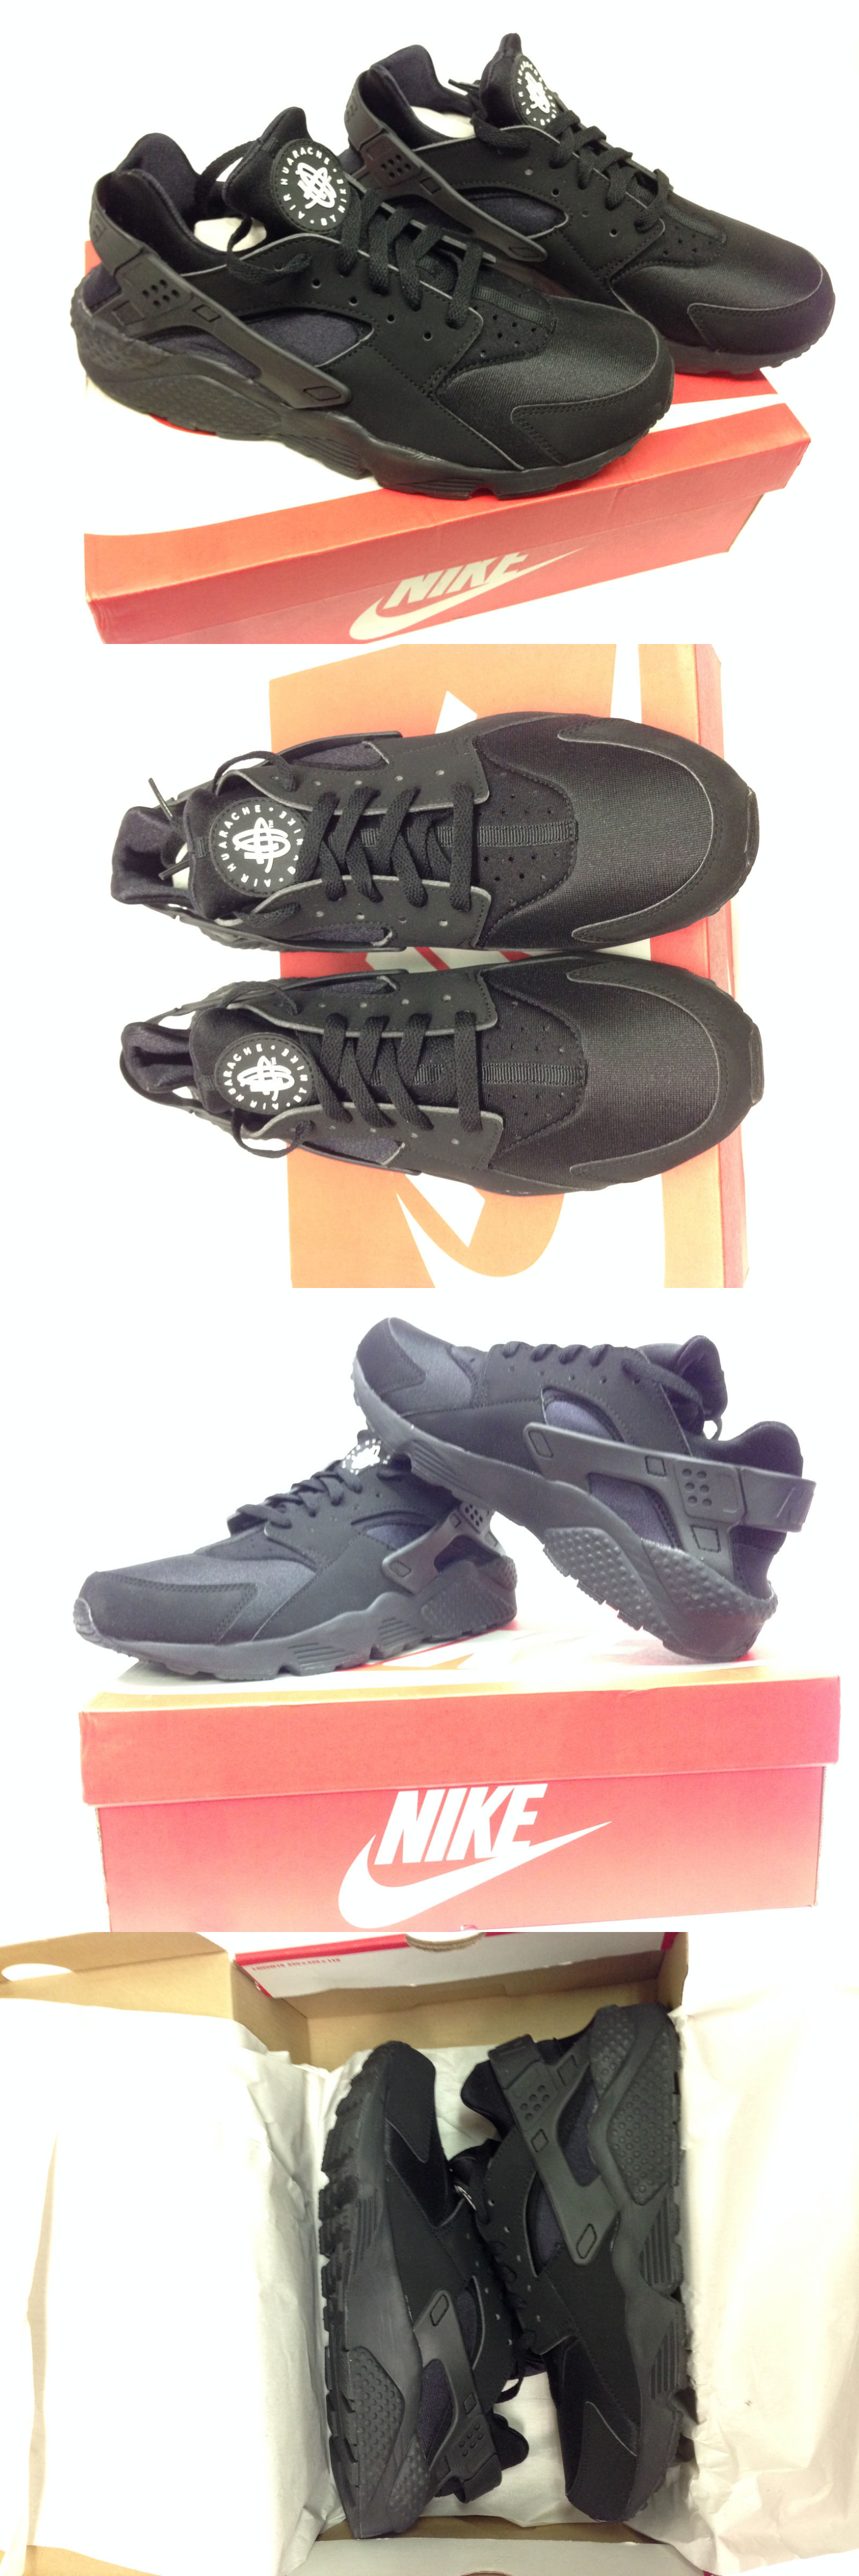 Athletic 15709: New Men S Nike Air Huarache Running Shoes 8-13 Size Black